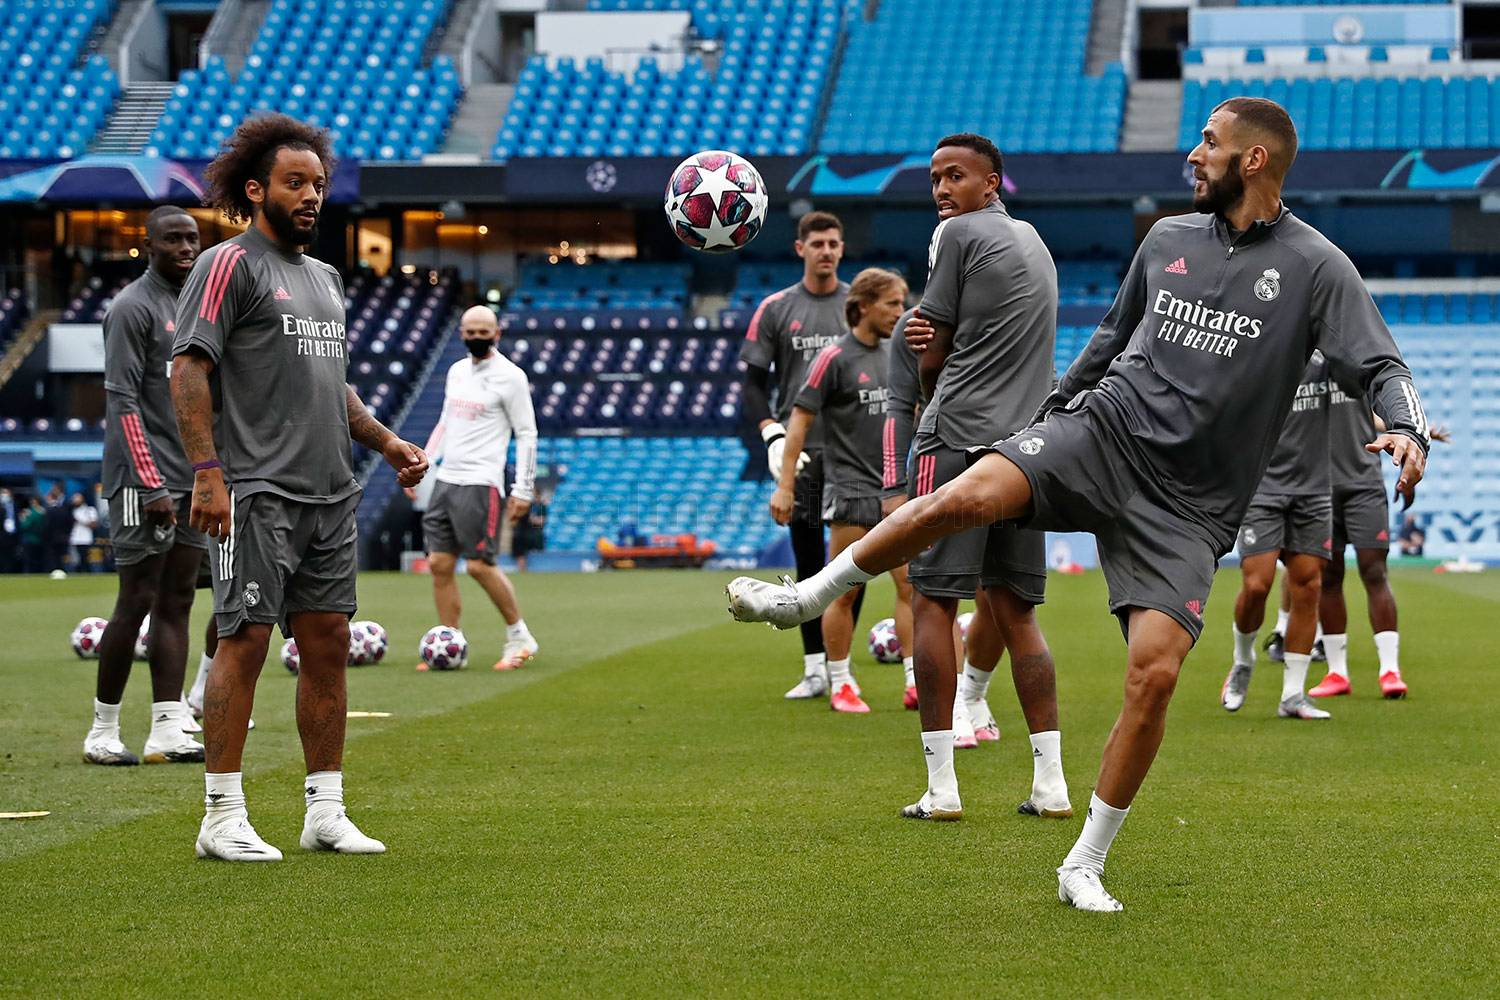 Real Madrid - Entrenamiento del Real Madrid en Mánchester  - 06-08-2020